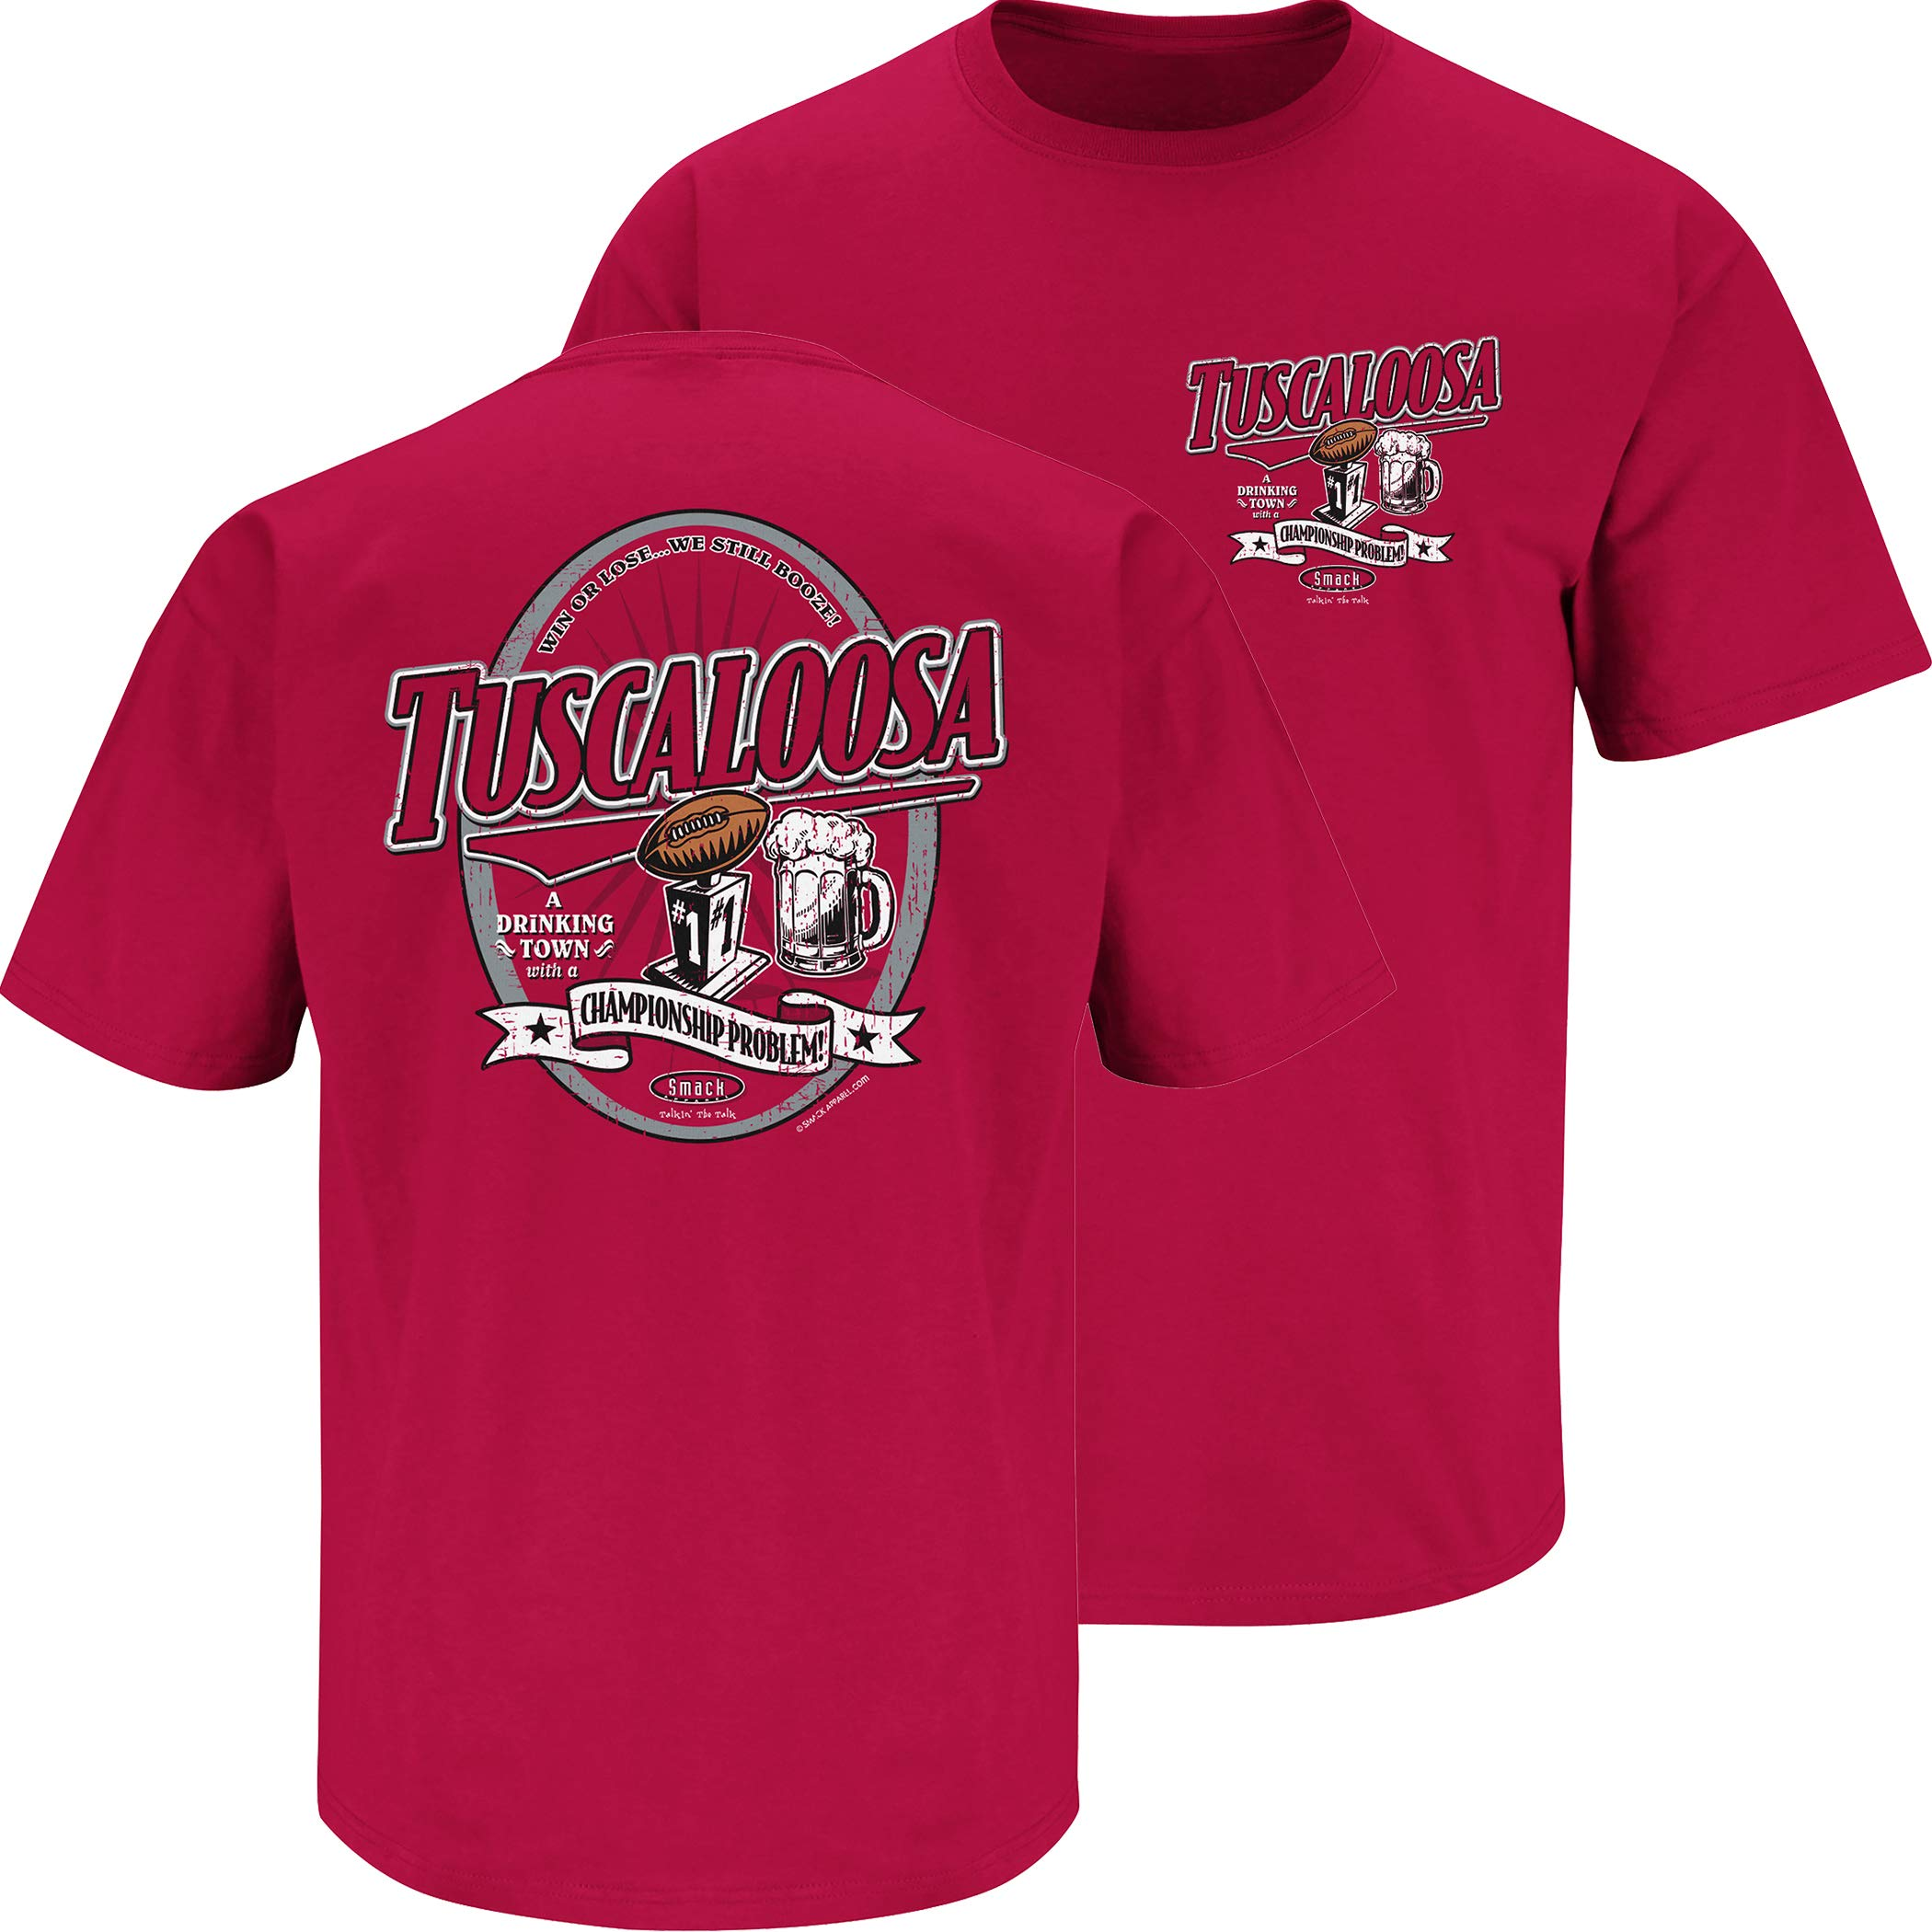 Smack Apparel Alabama Football Fans. Tuscaloosa A Drinking Town with a Championship Problem Cardinal Shirt (Sm-5x)